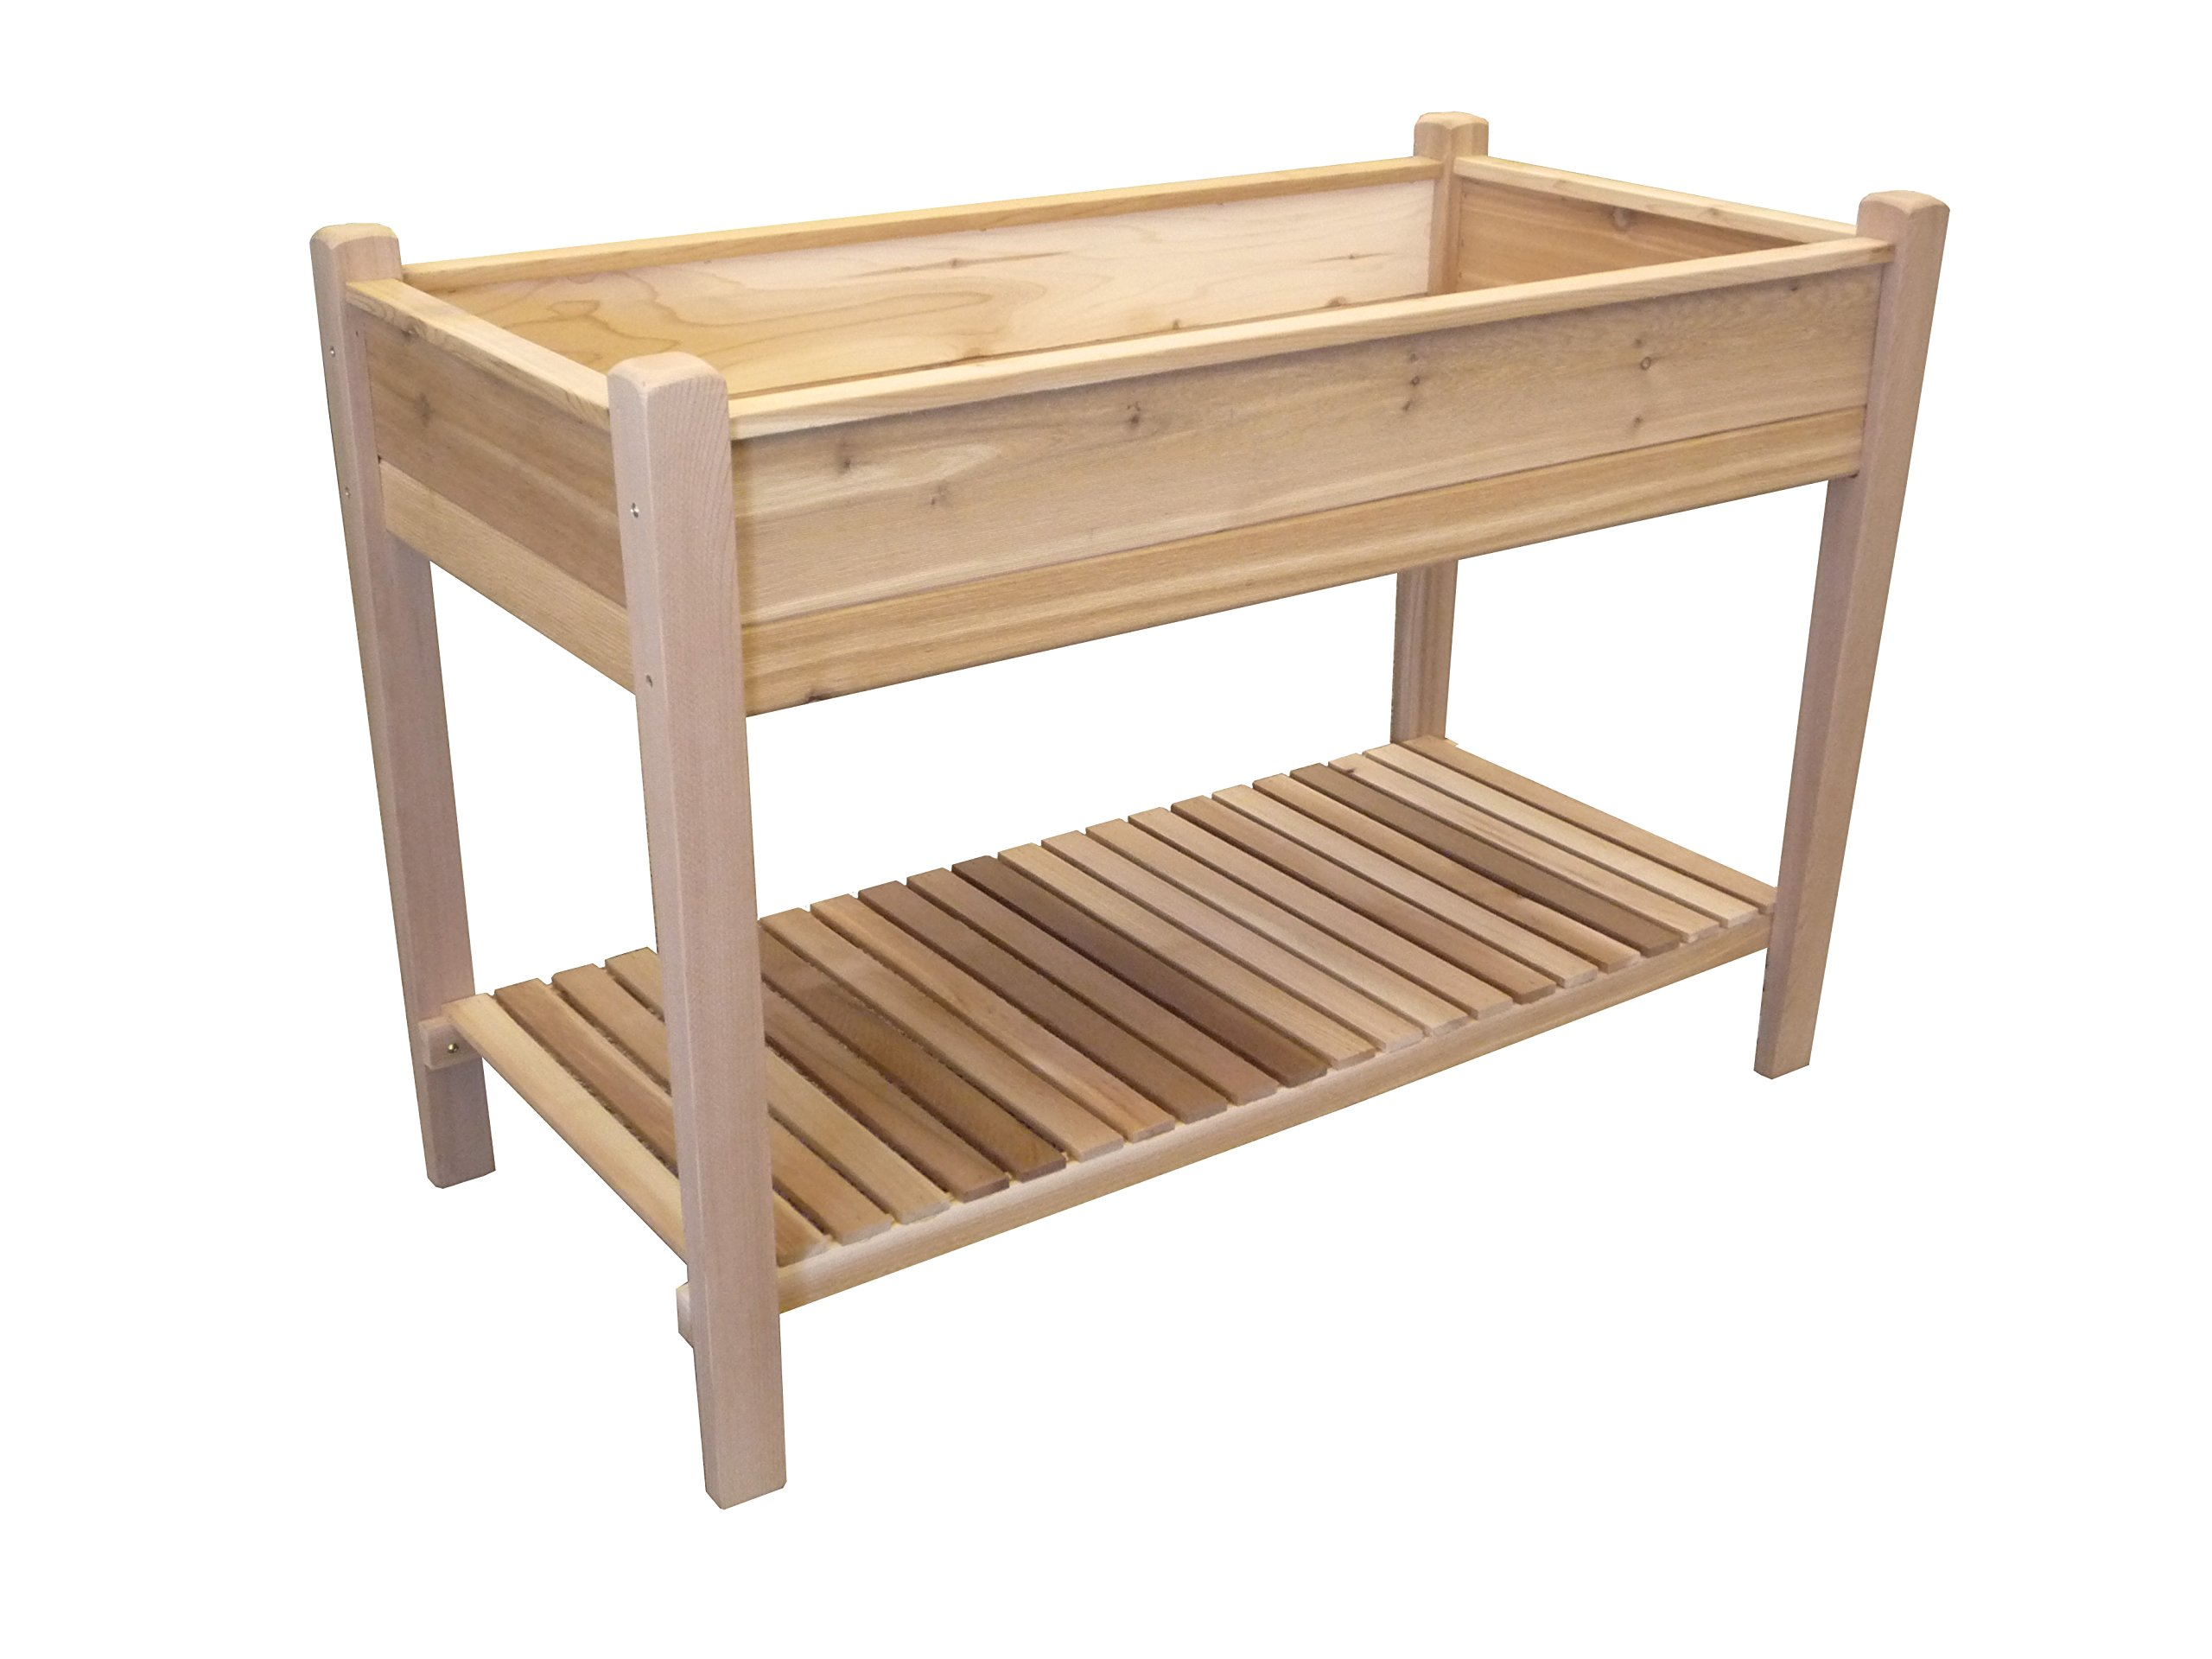 Tierra Garden 4432 Rectangular Red Cedar Raised Garden Bed